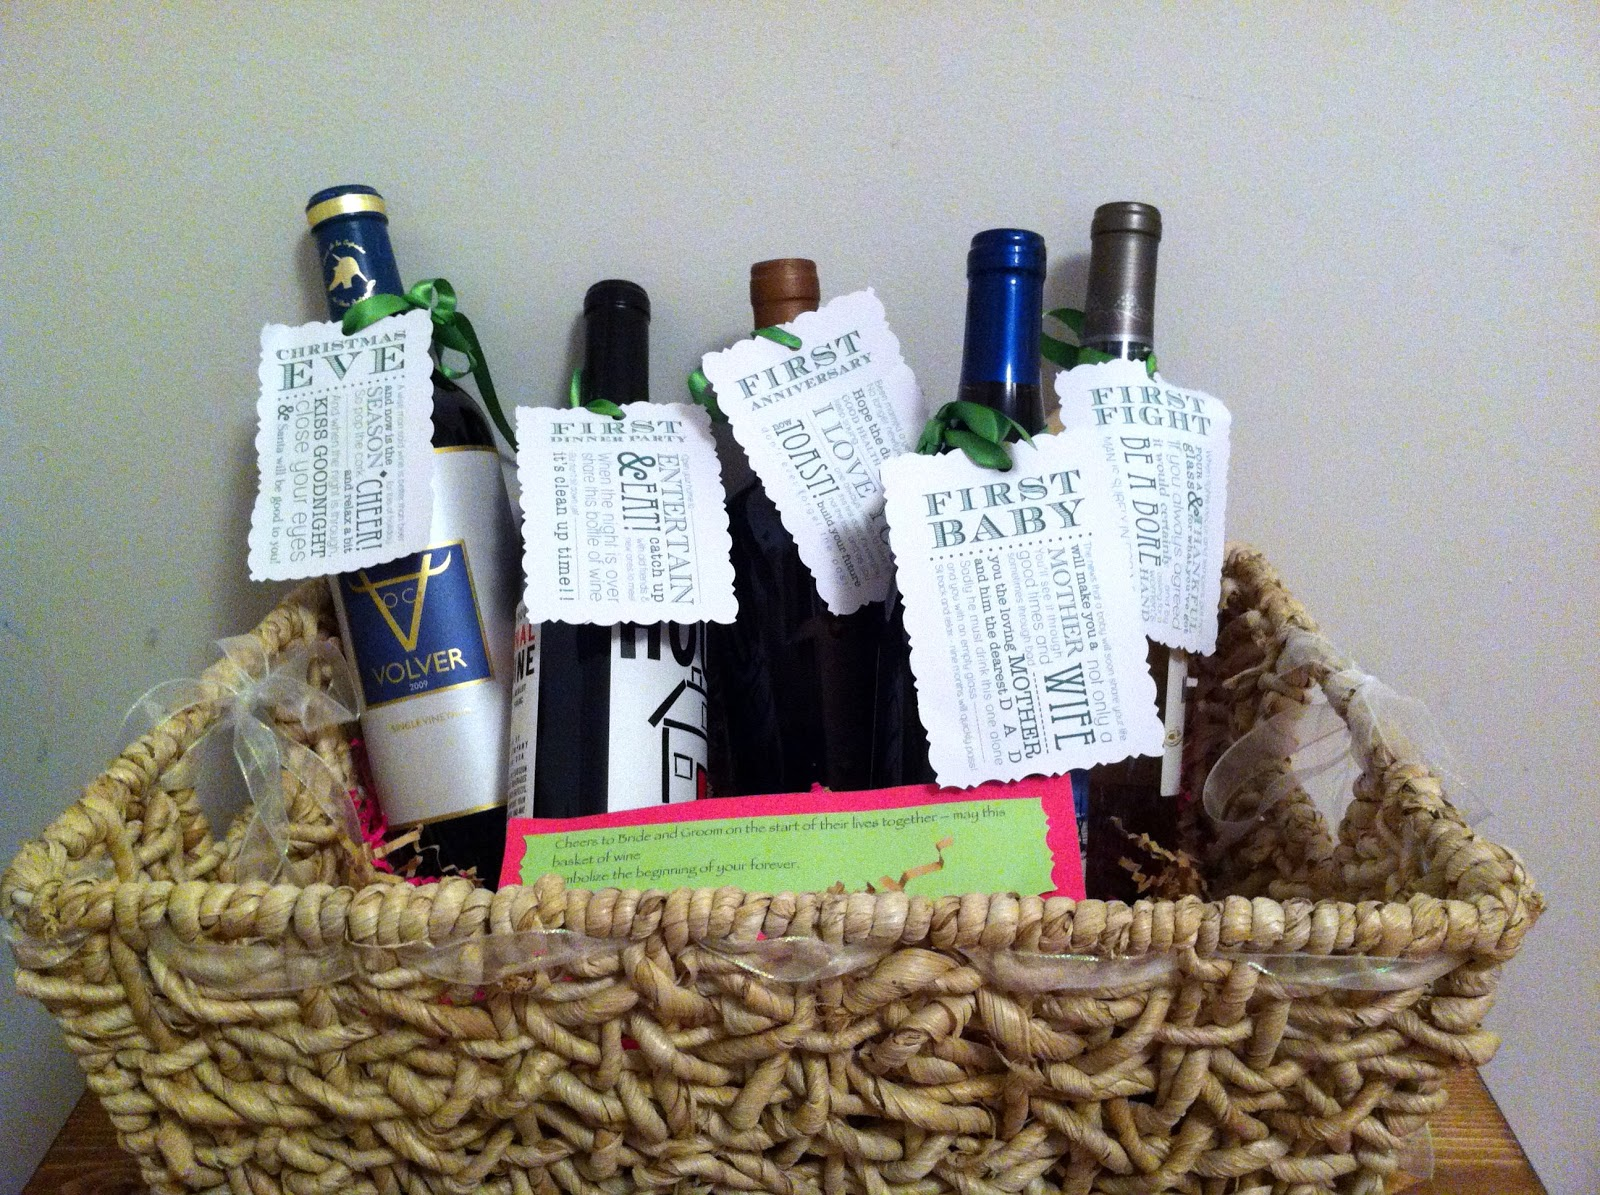 Wine Gifts For Wedding: Keep It Simple And Fun: Personalized Wedding Gifts